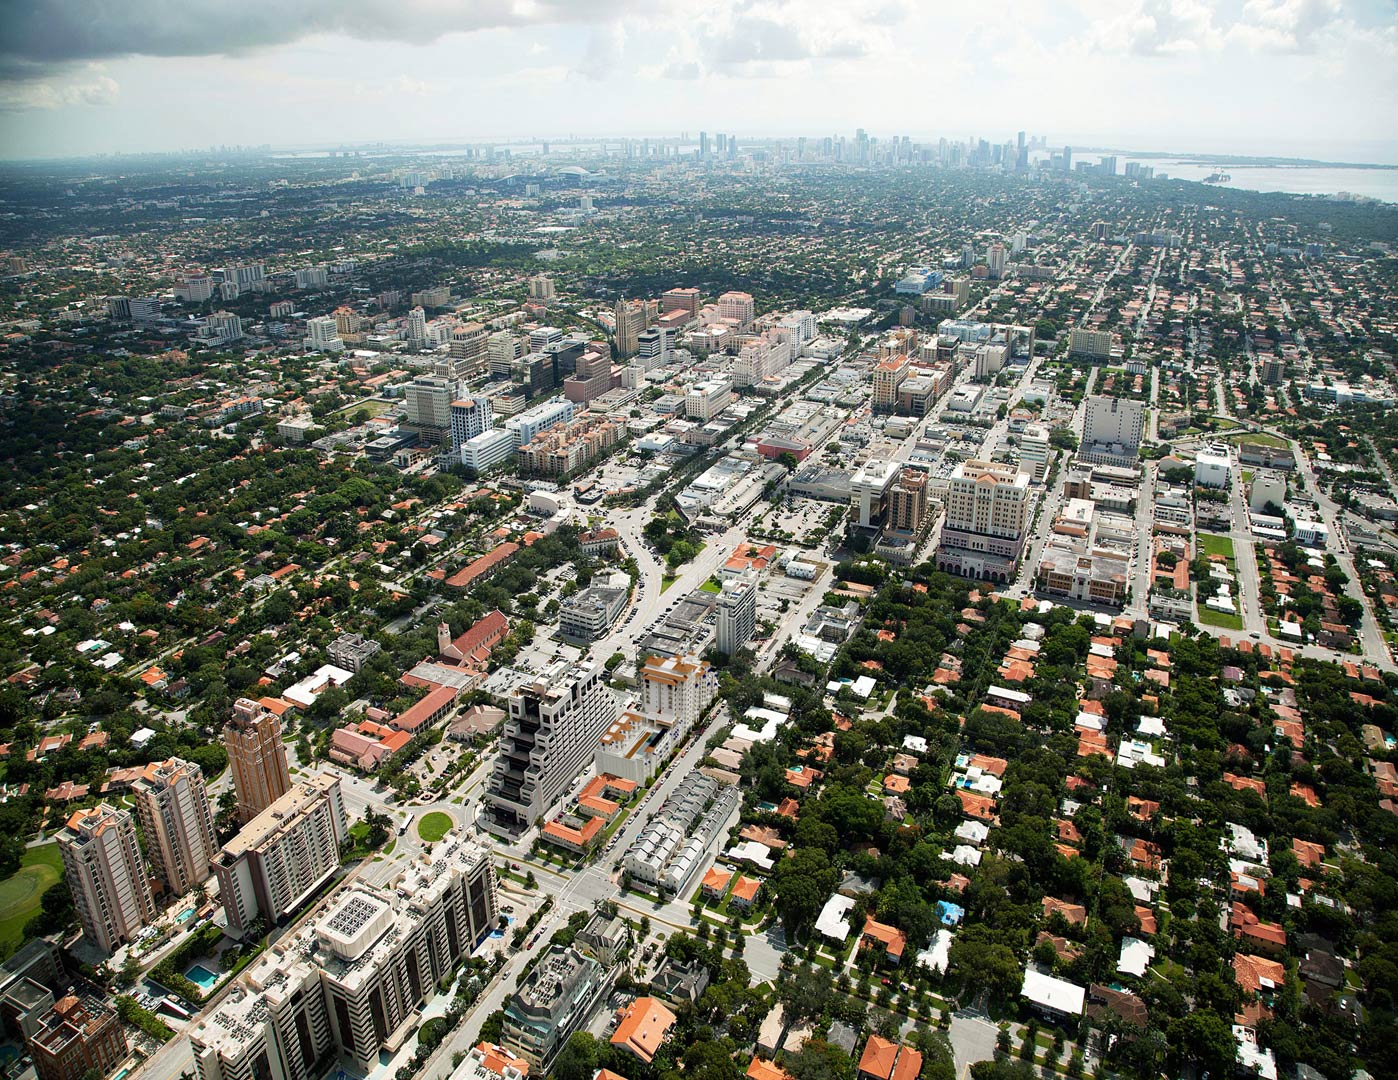 Residential location in Miami - Aerial Image